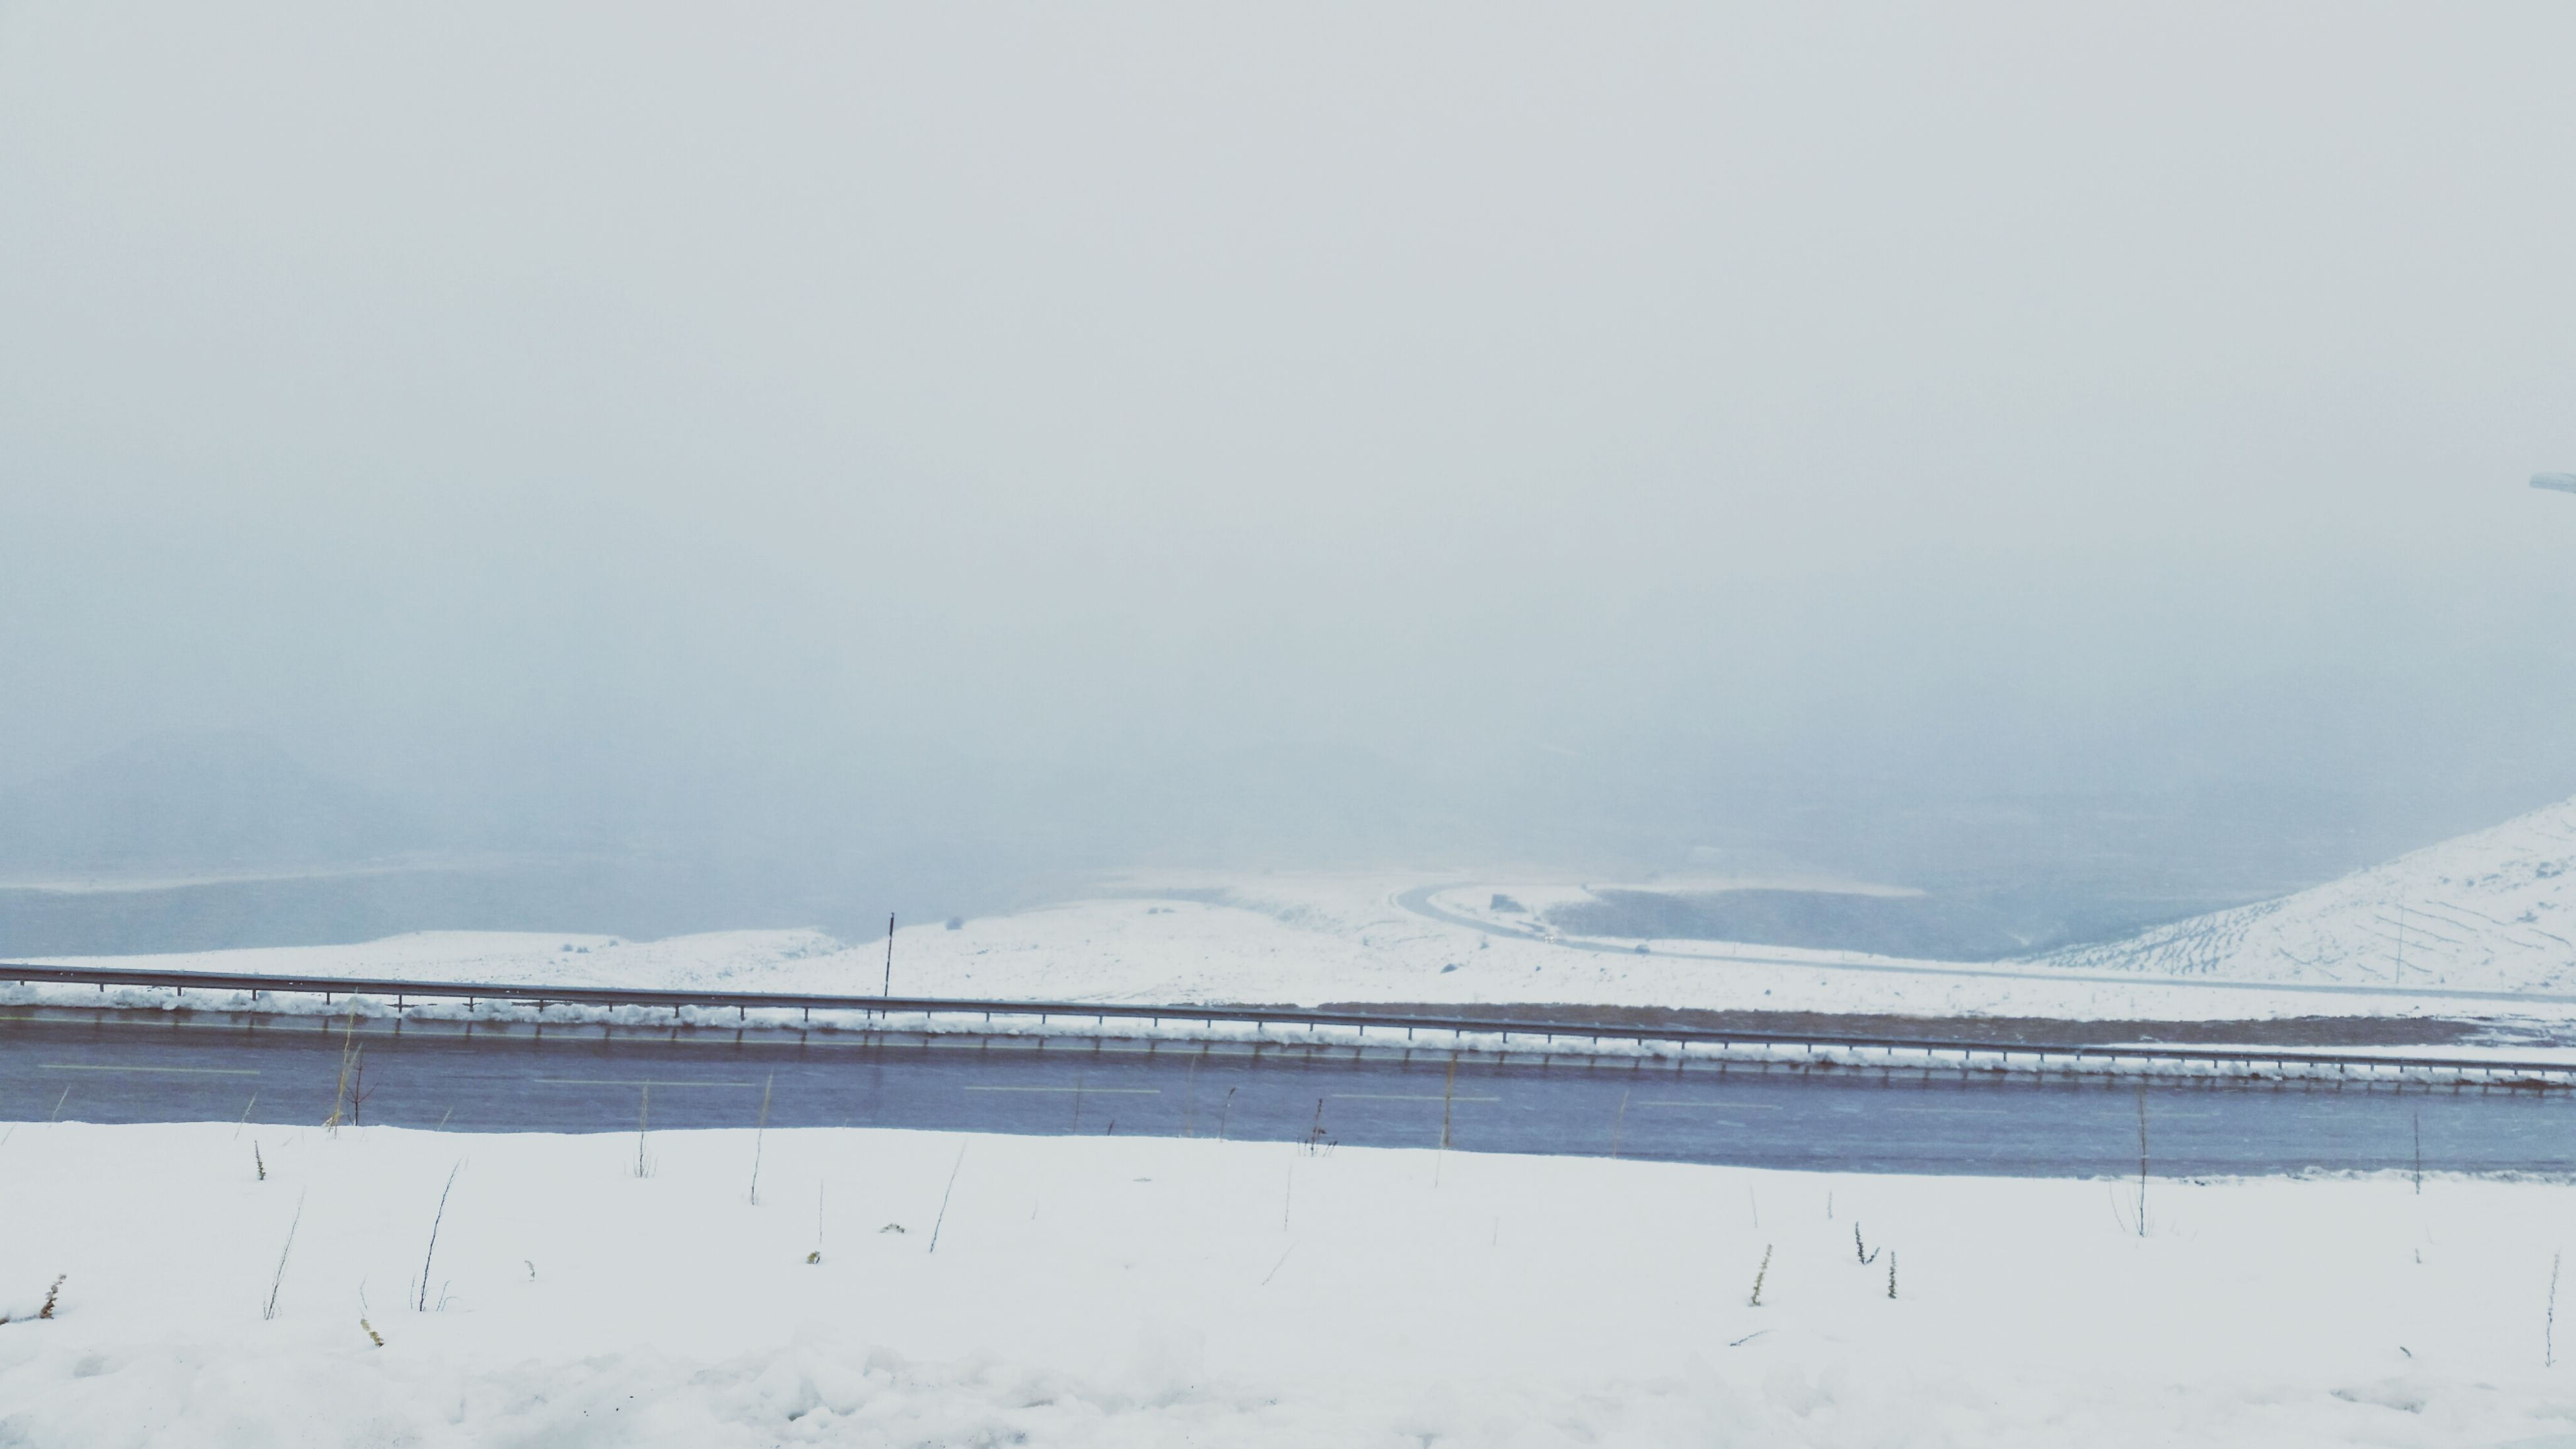 snow, winter, cold temperature, season, weather, covering, copy space, tranquil scene, landscape, tranquility, frozen, scenics, white color, nature, beauty in nature, clear sky, mountain, snow covered, covered, field